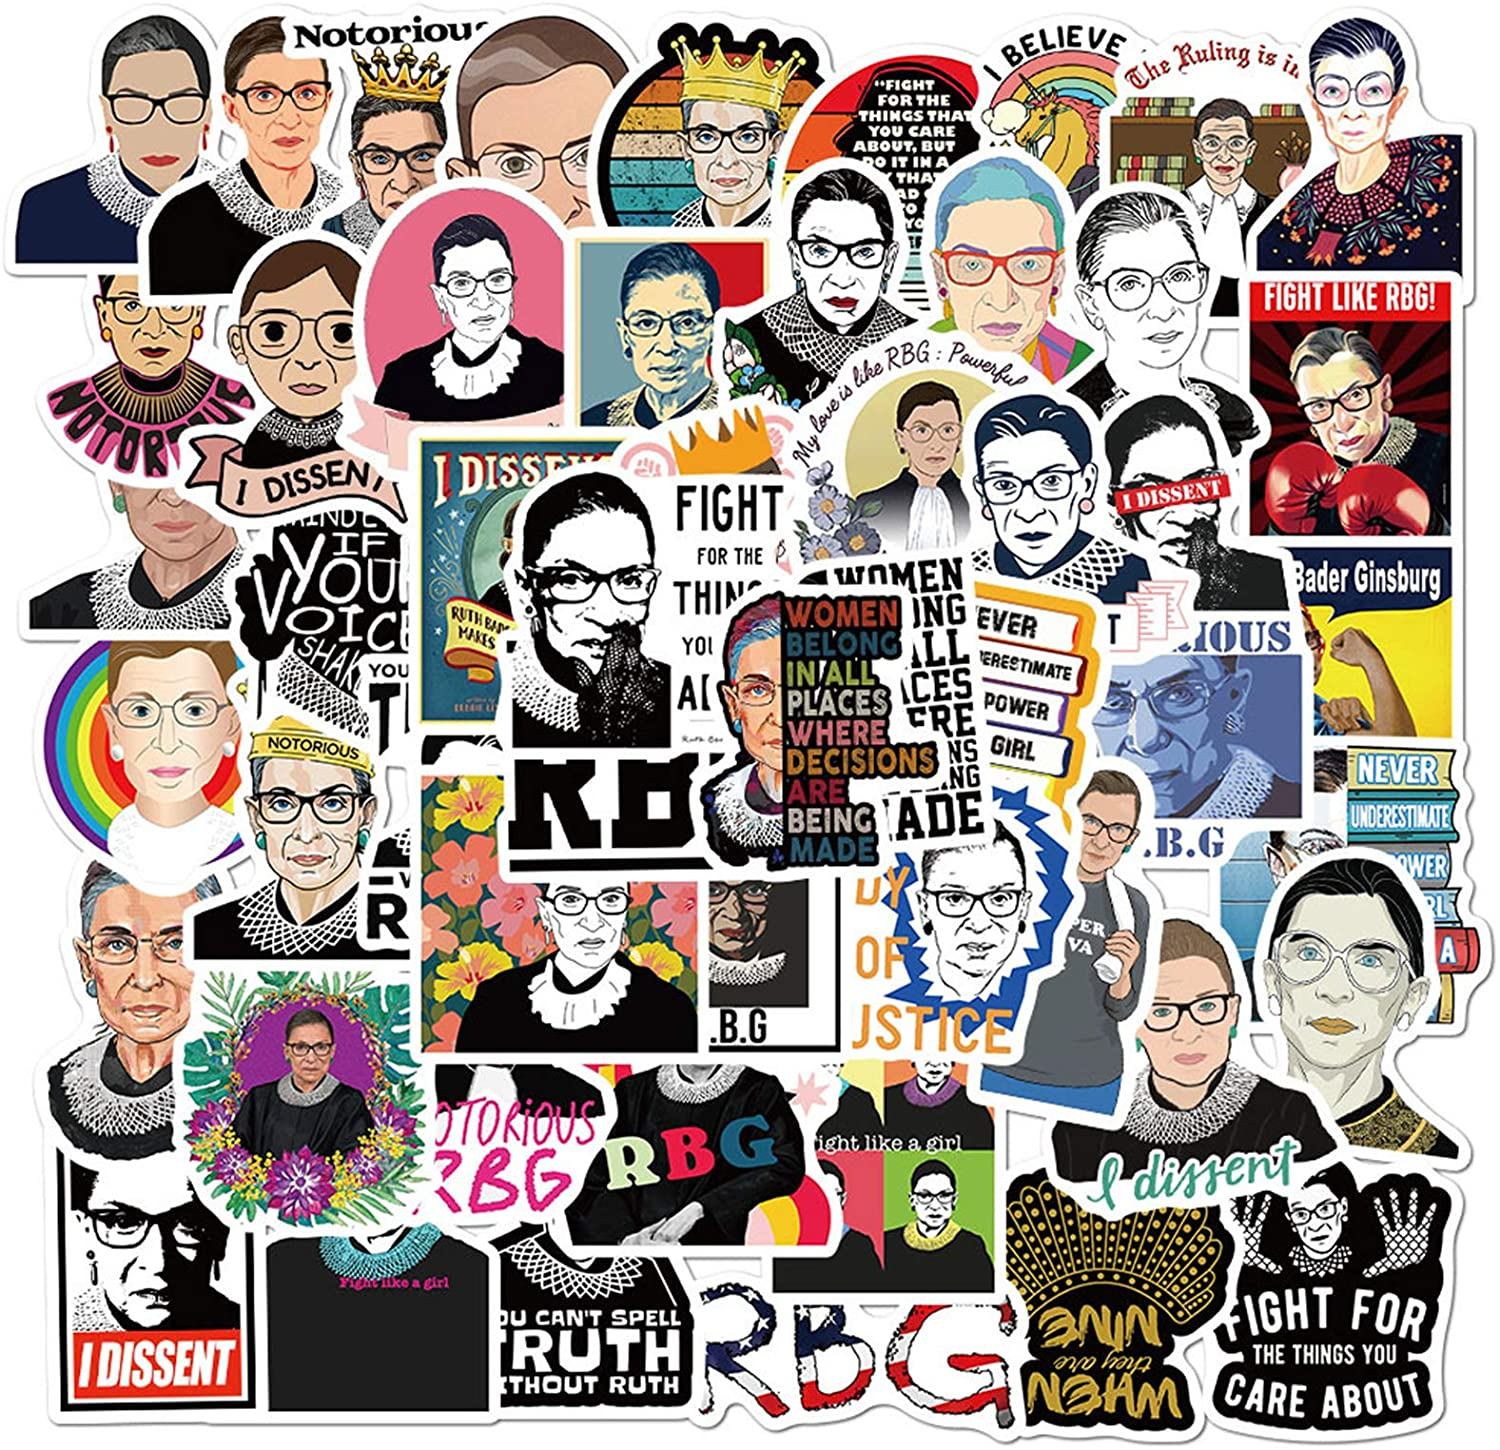 52pcs Ruth Bader Ginsburg Vinyls Stickers Laptop Sticker Waterproof Stickers Luggage Skateboard Water Bottle Stickers Decal Bicycle Bumper Snowboard Decorate Gift for Kid. /Ginsburg